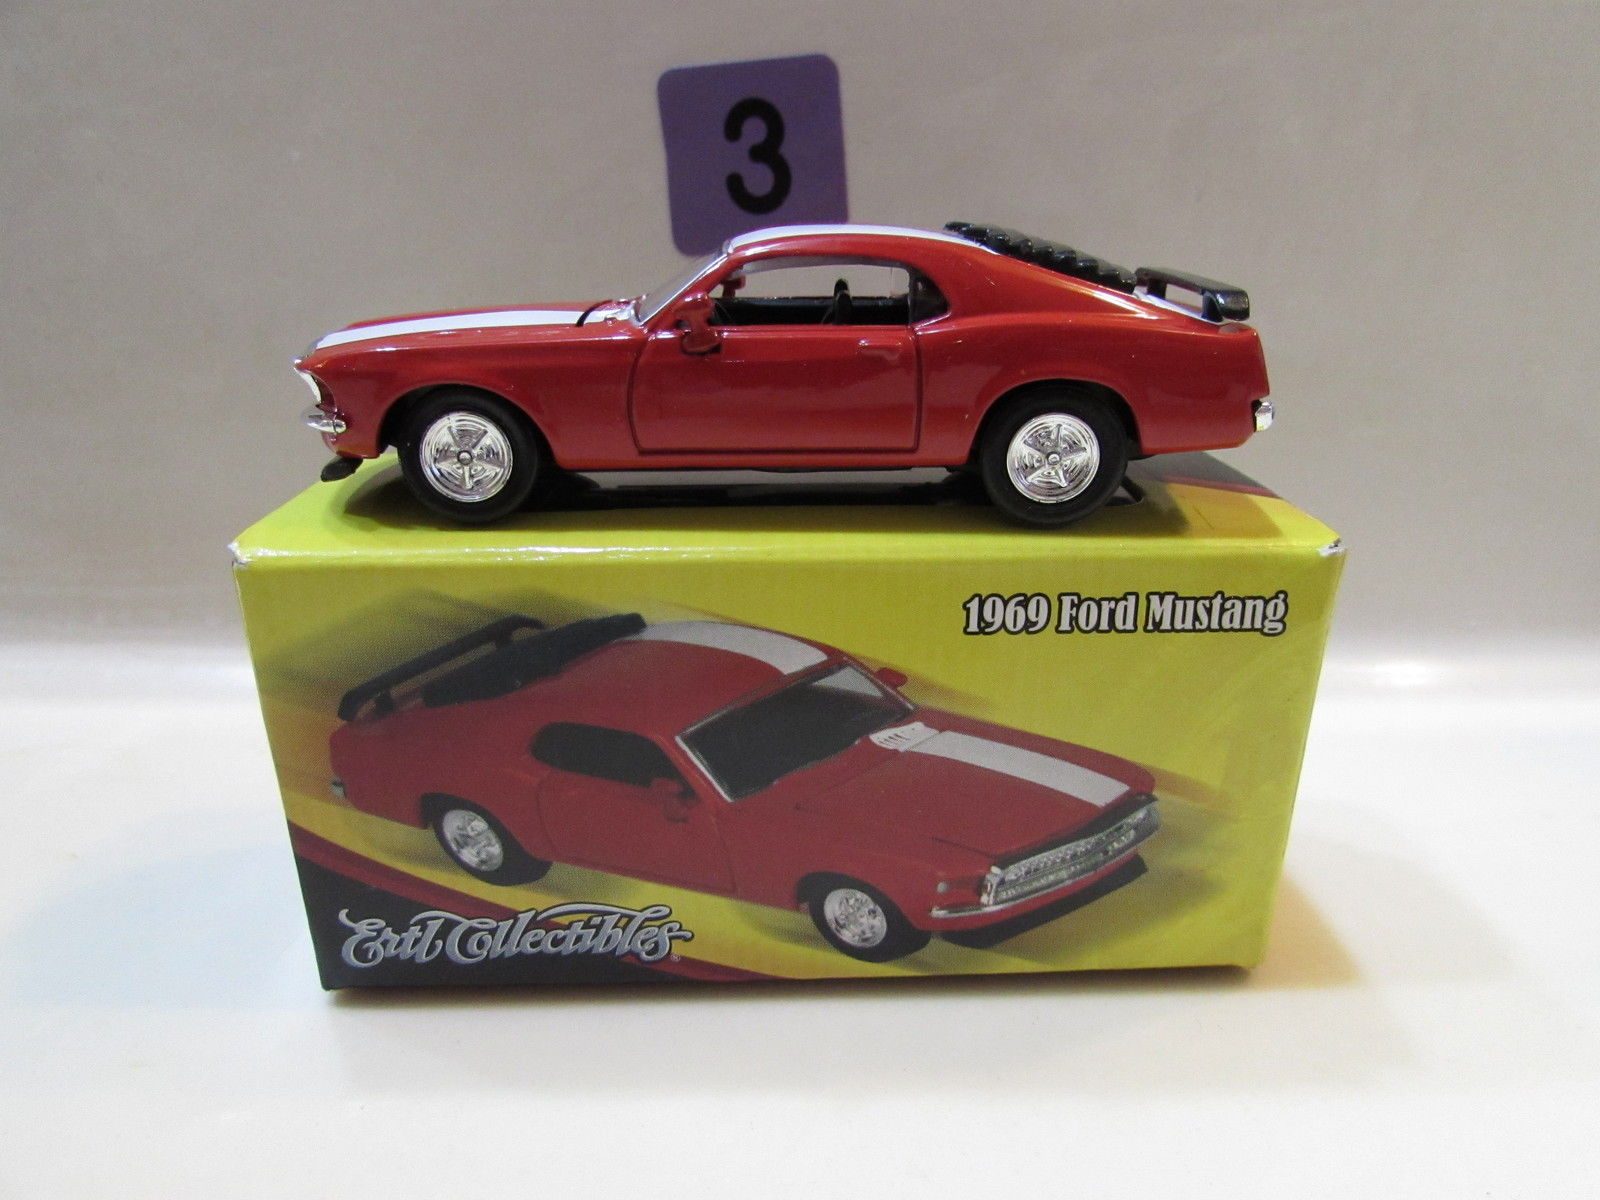 2000 ERTL COLLECTIBLES 1969 FORD MUSTANG E+